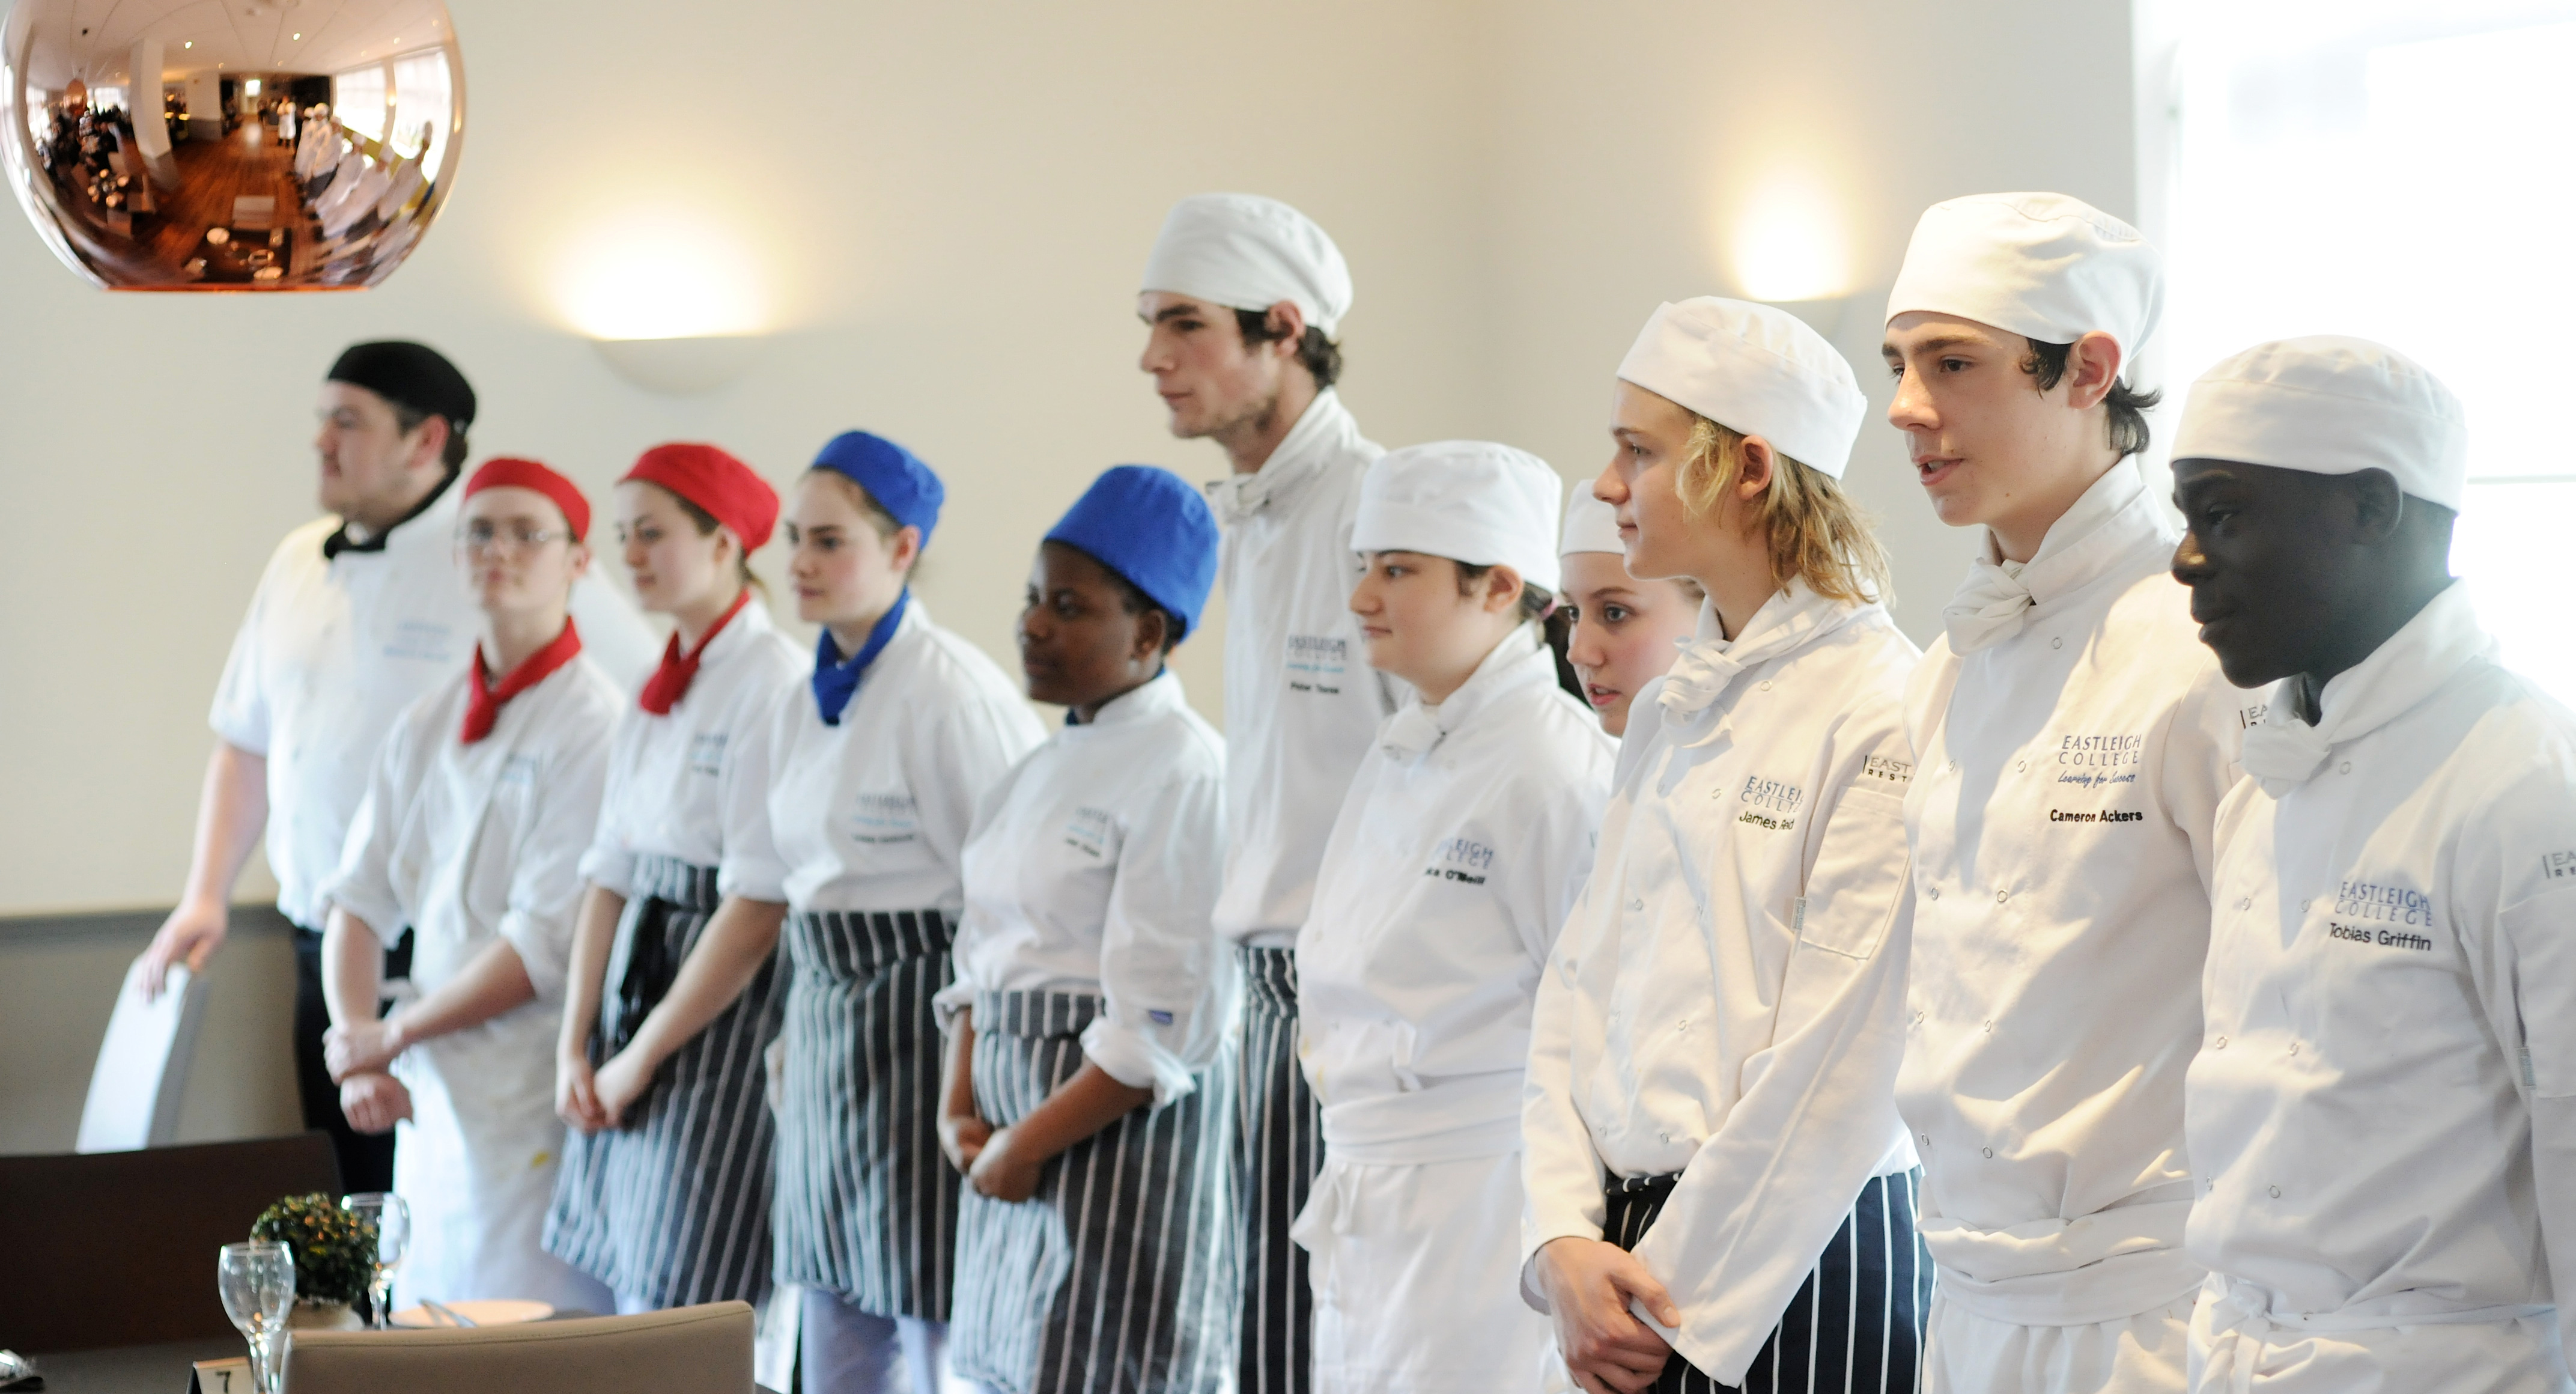 The Junior Chefs Programme is looking for recruits!